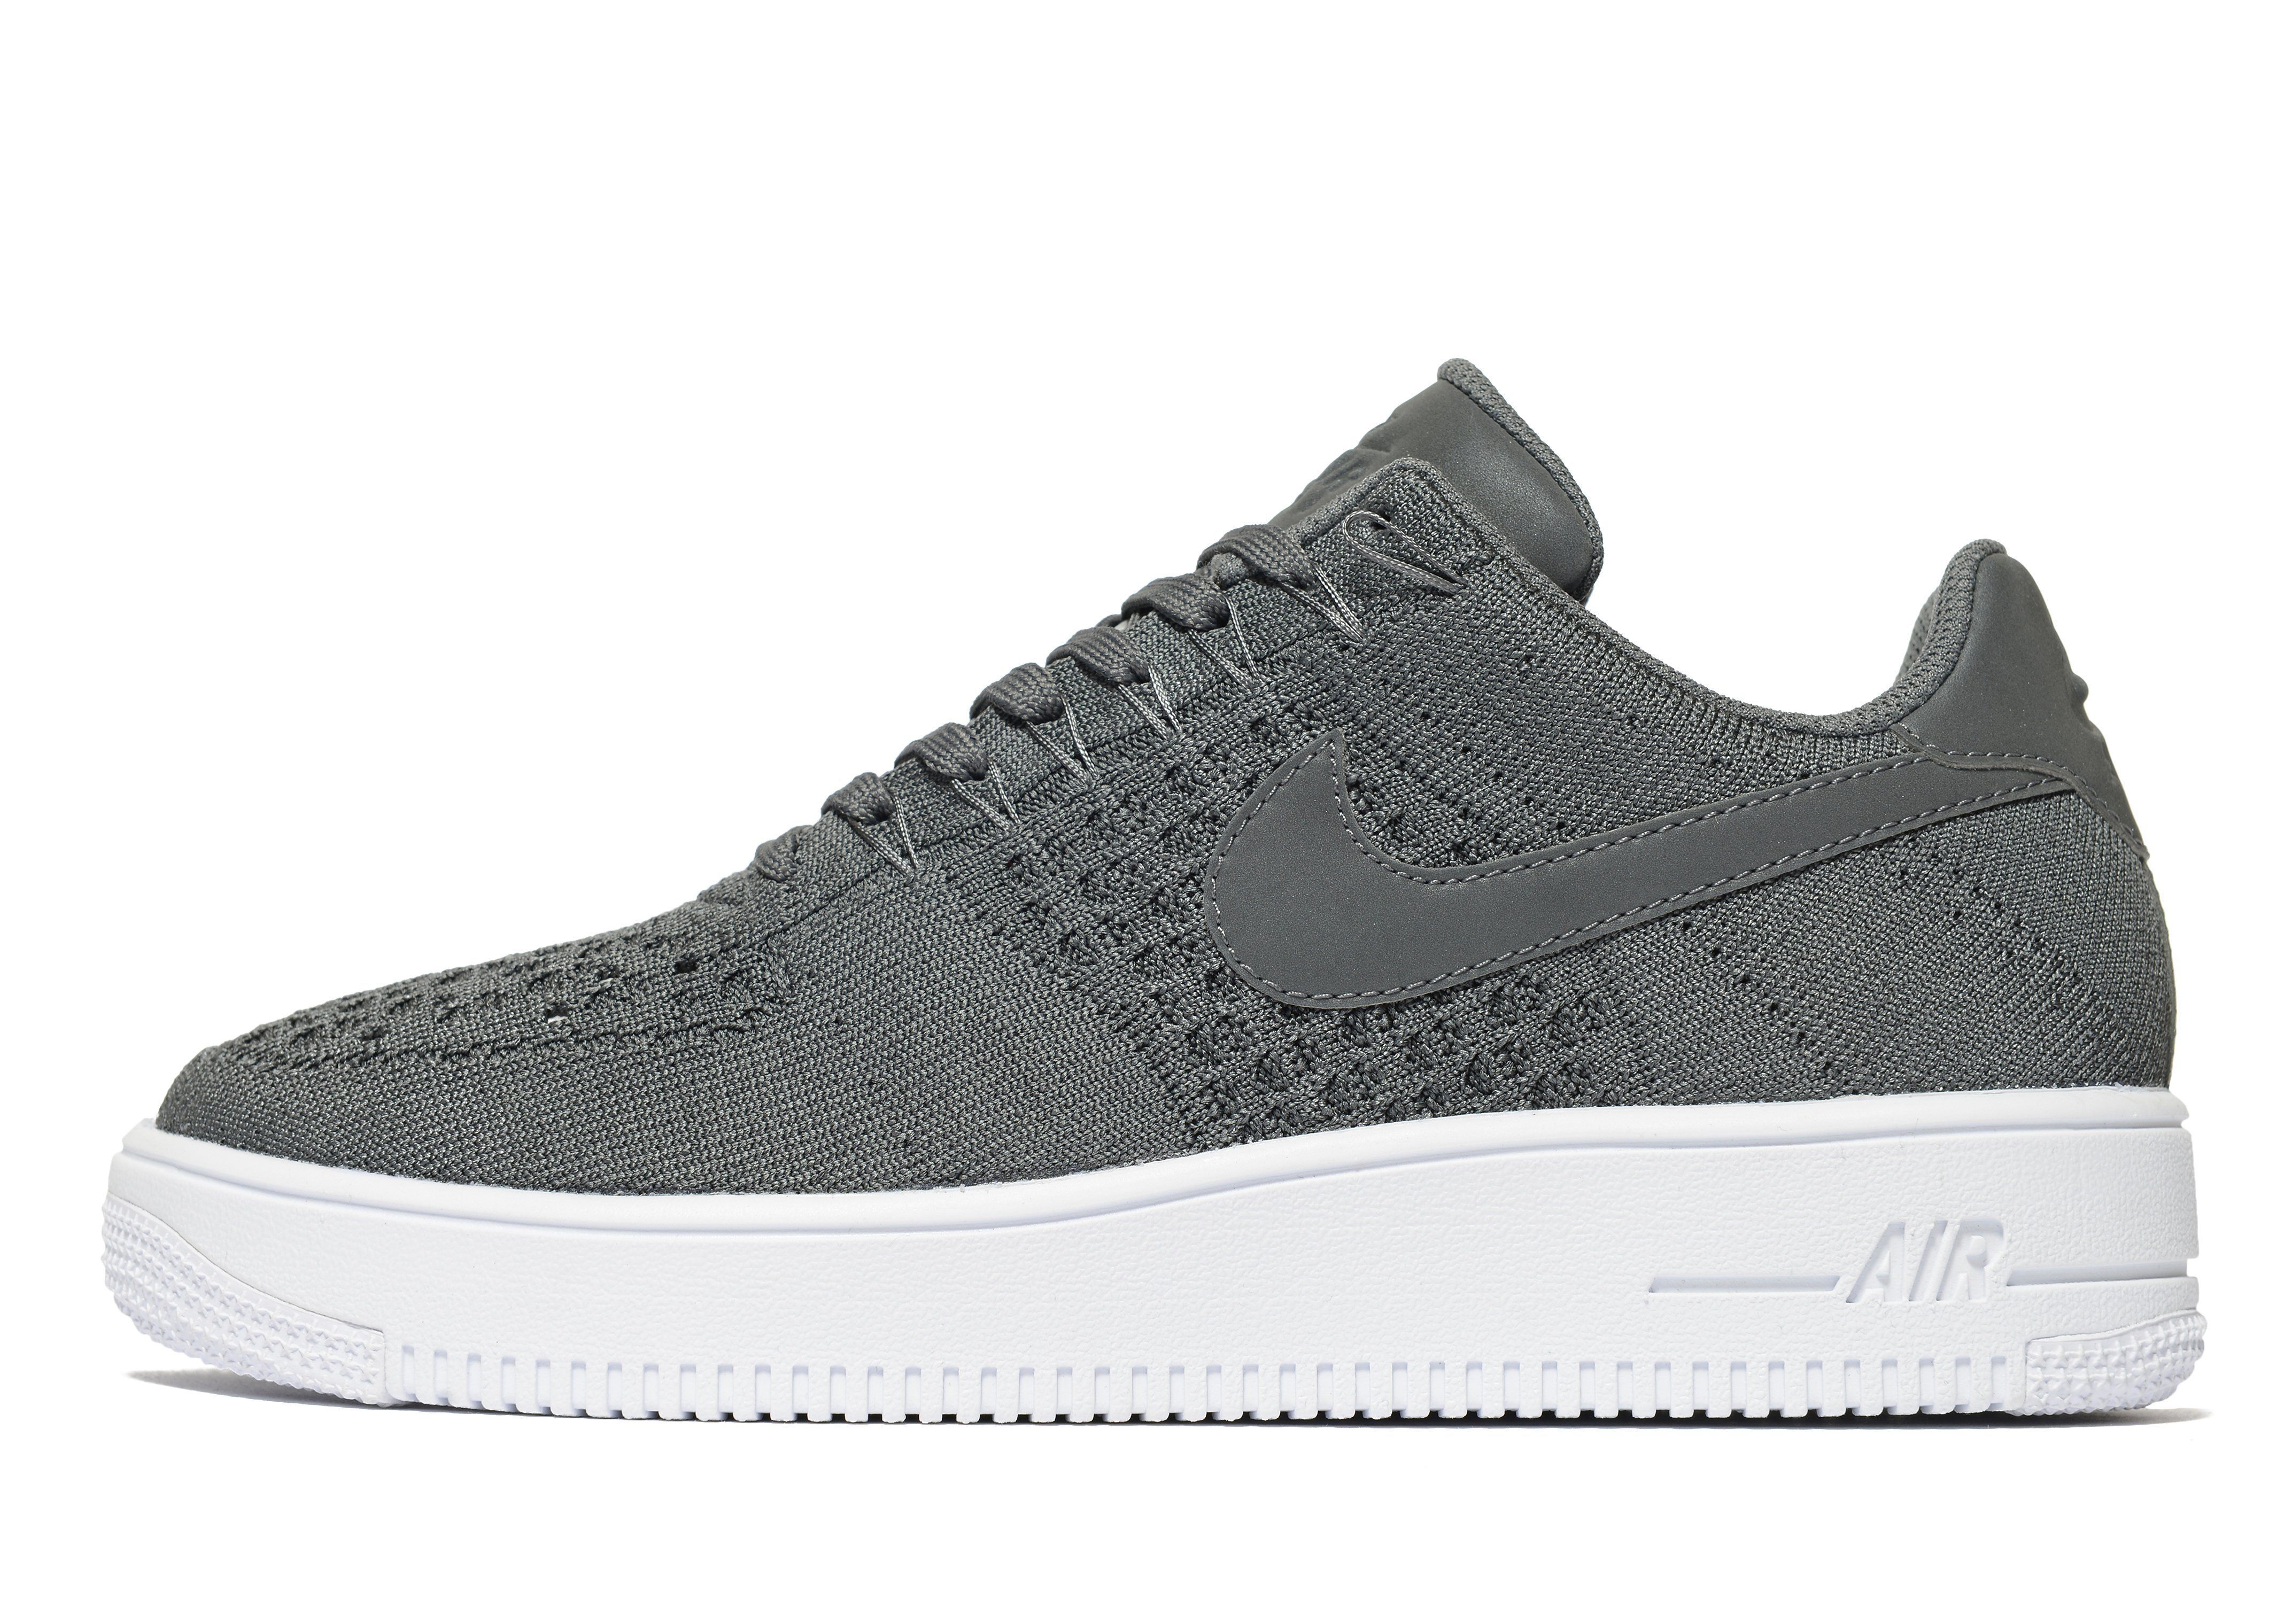 Nike Air Force 1 Flyknit with JD Sports